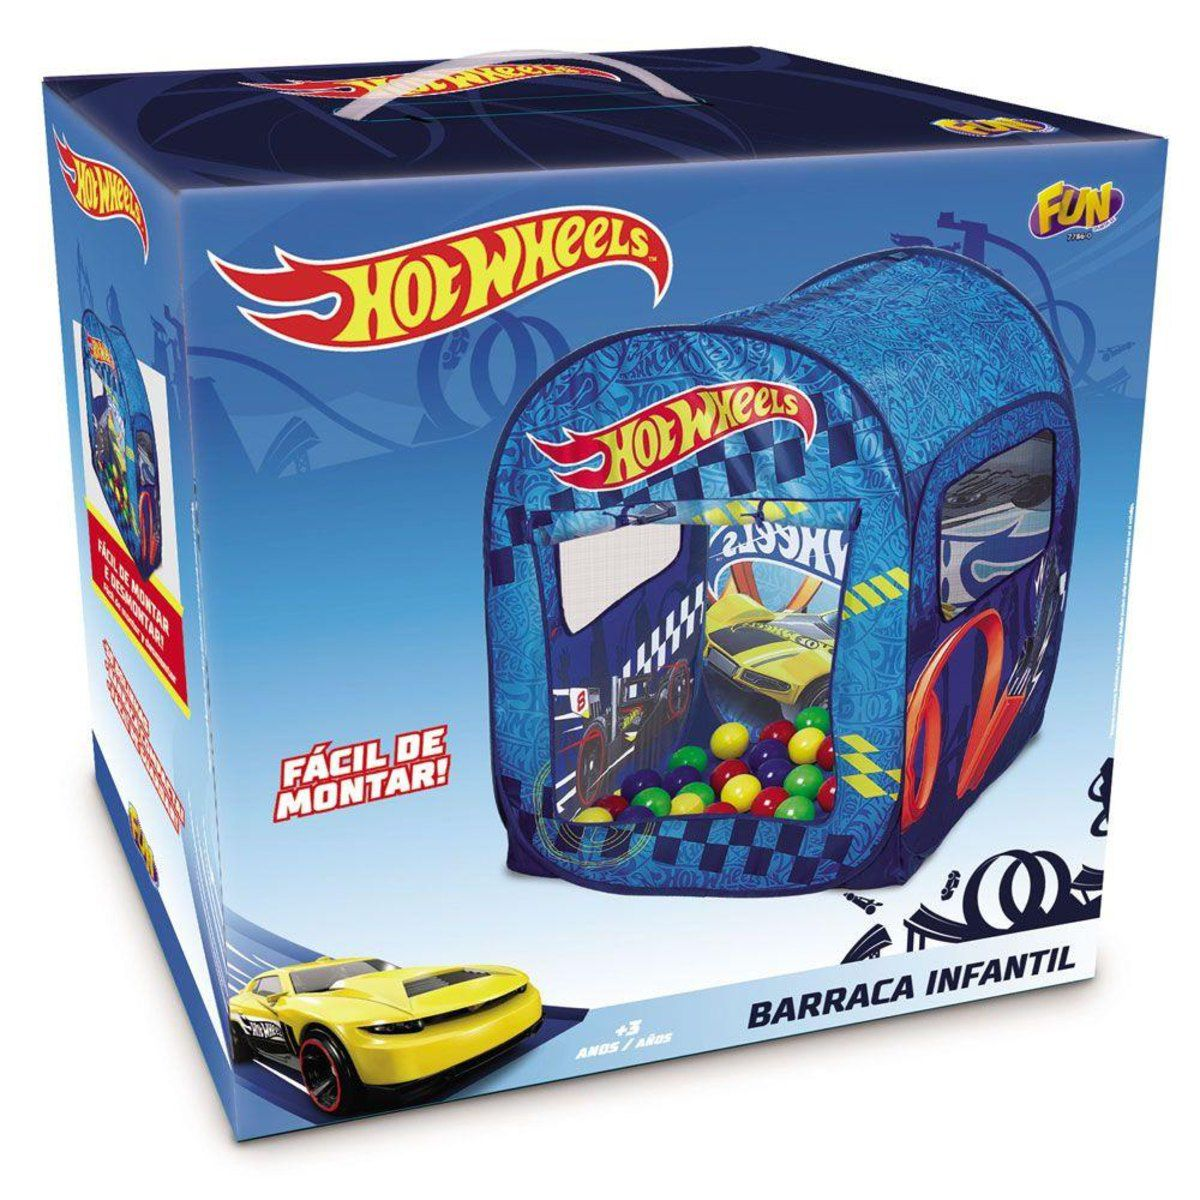 Barraca Infantil Com 50 Bolinhas Hot Wheels 80438 Fun